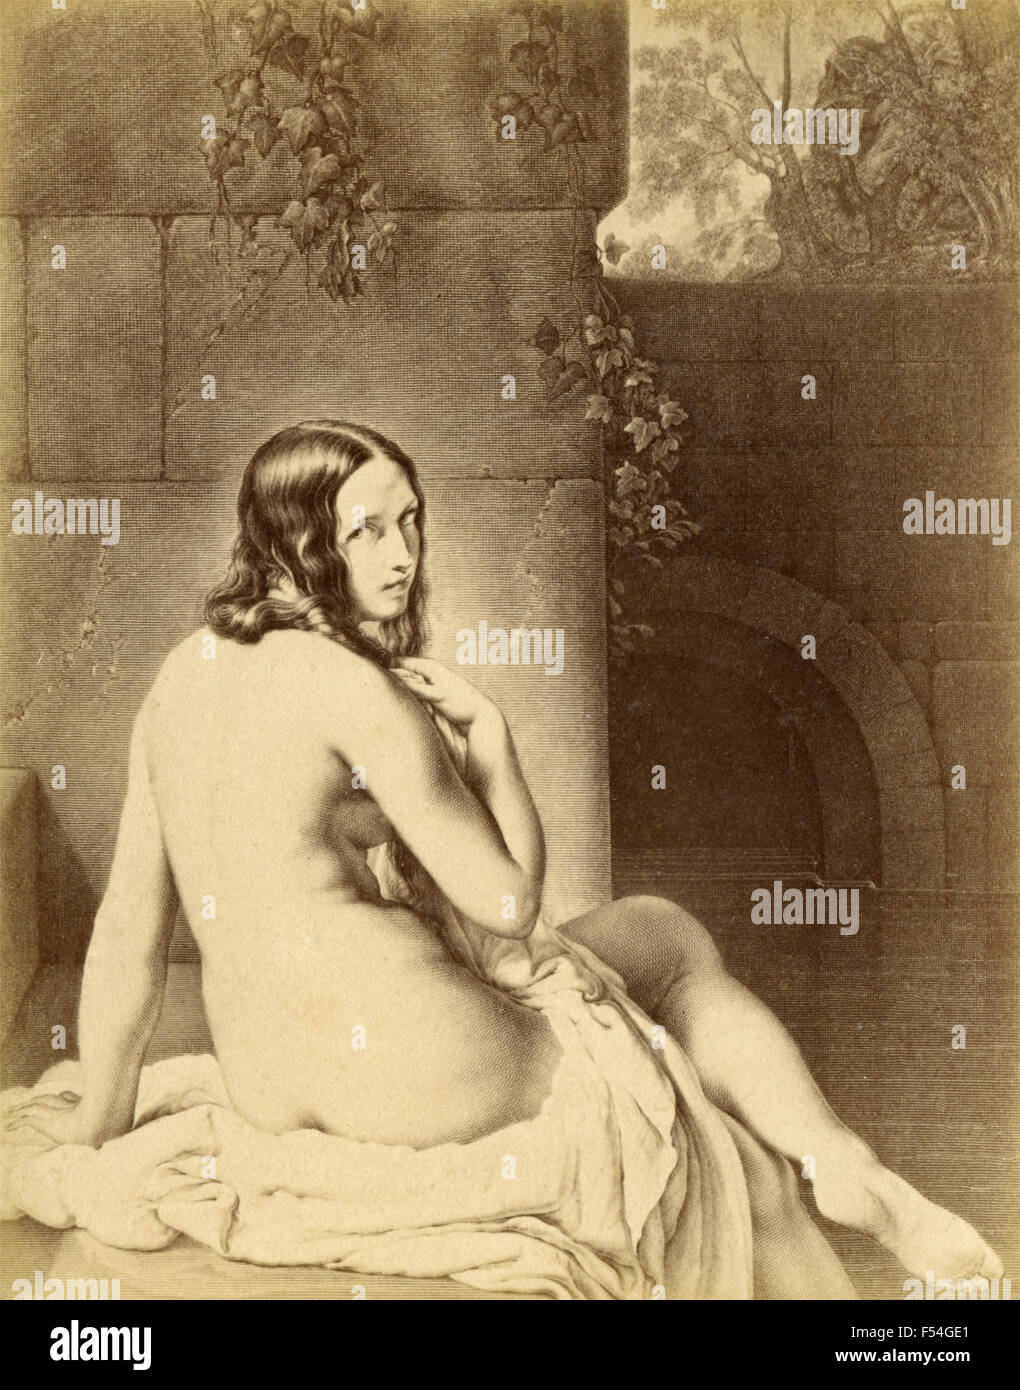 The Bather, engraving by Francesco Hayez - Stock Image